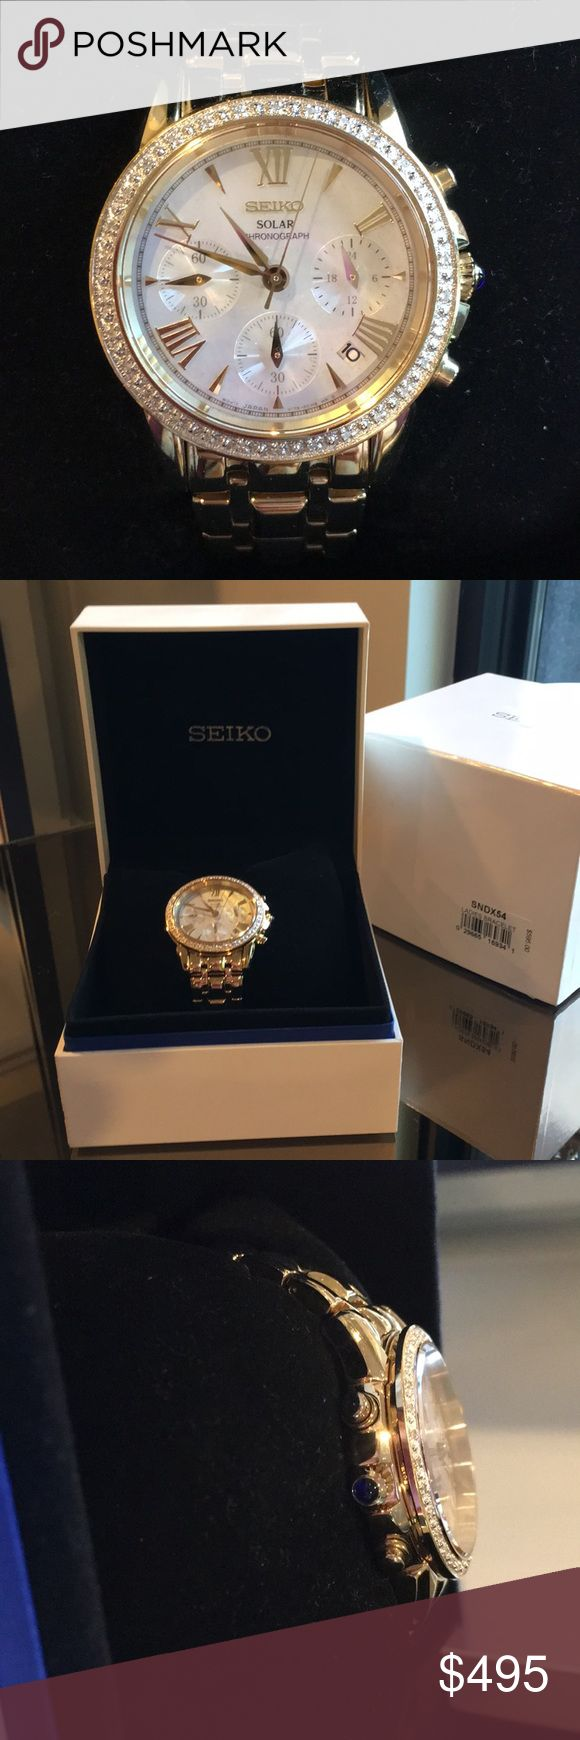 Women's Seiko Gold Diamond Solar Chronograph Watch Beautiful Gold and Diamond Seiko Solar Chronograph watch. Emerald blue dial. Hardly ever worn.  Great watch I currently just have too many gold watches. Seiko Accessories Watches